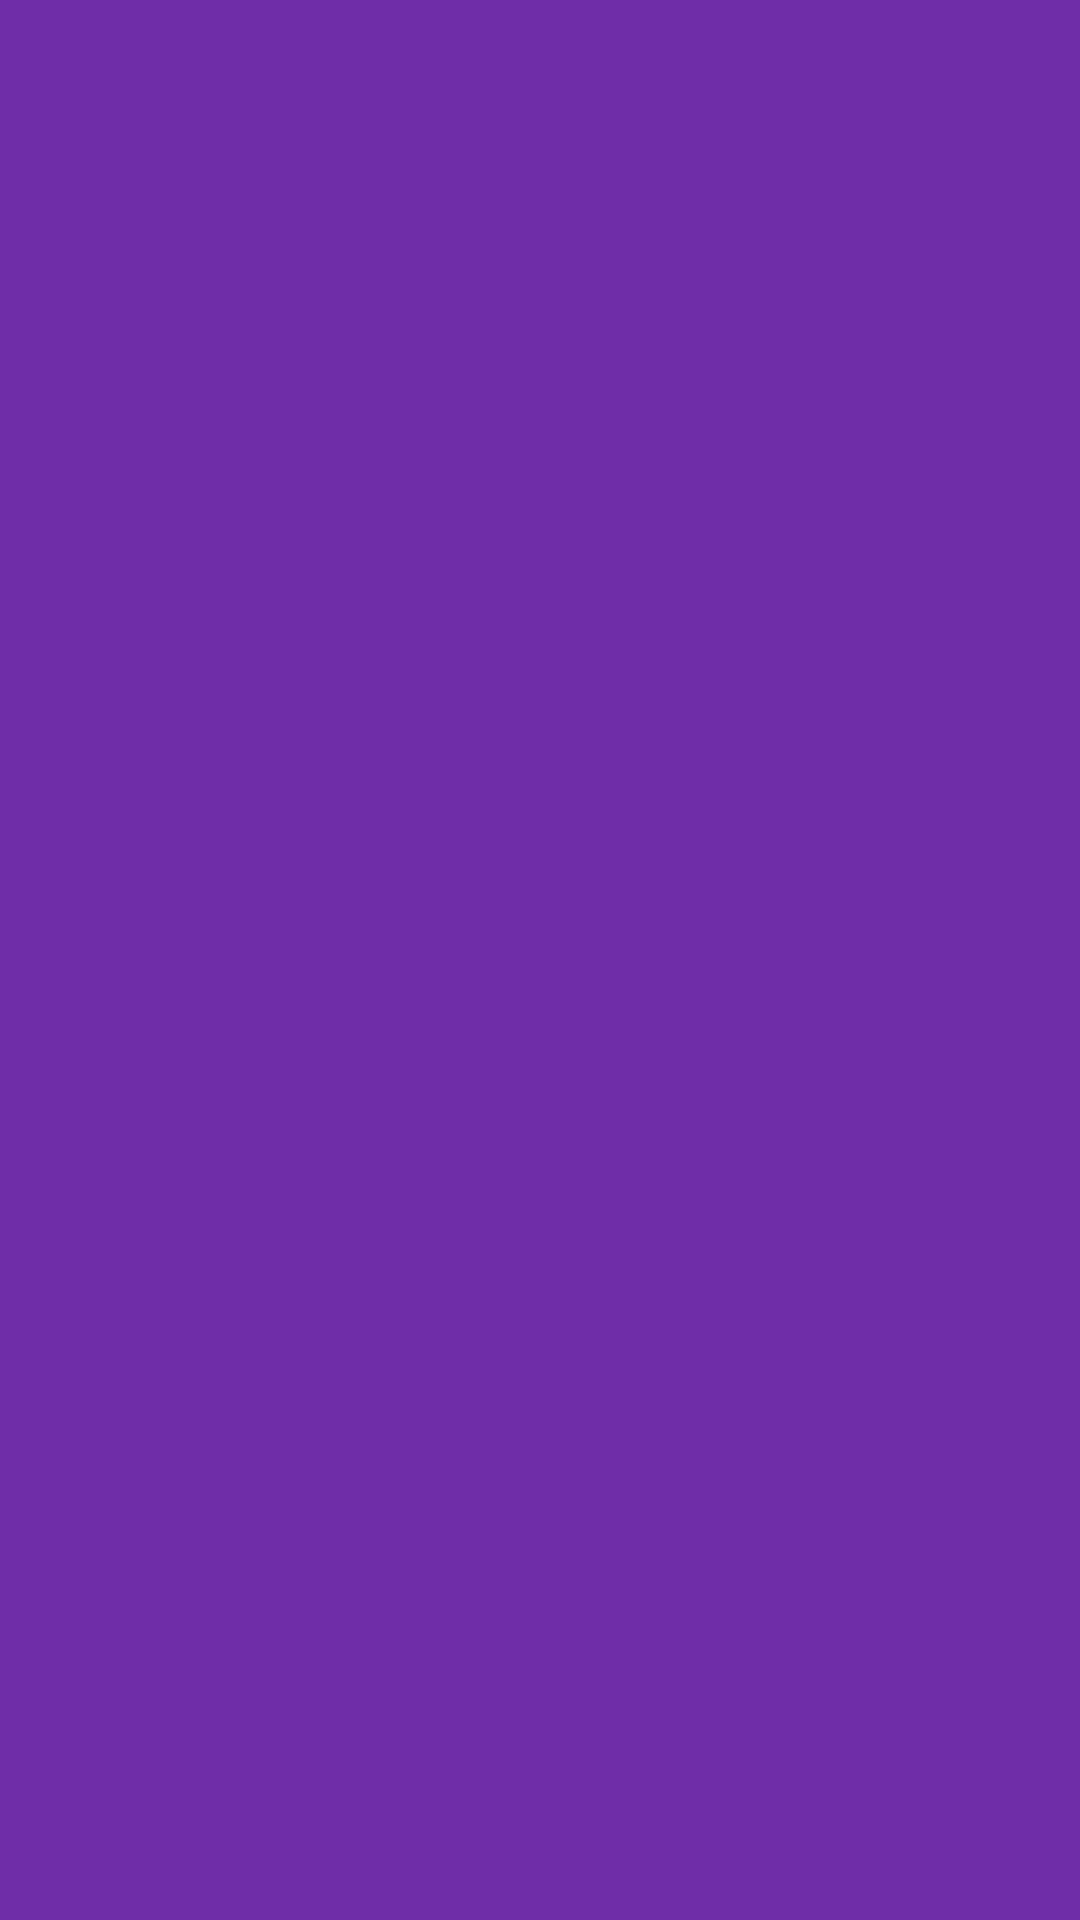 1080x1920 Grape Solid Color Background